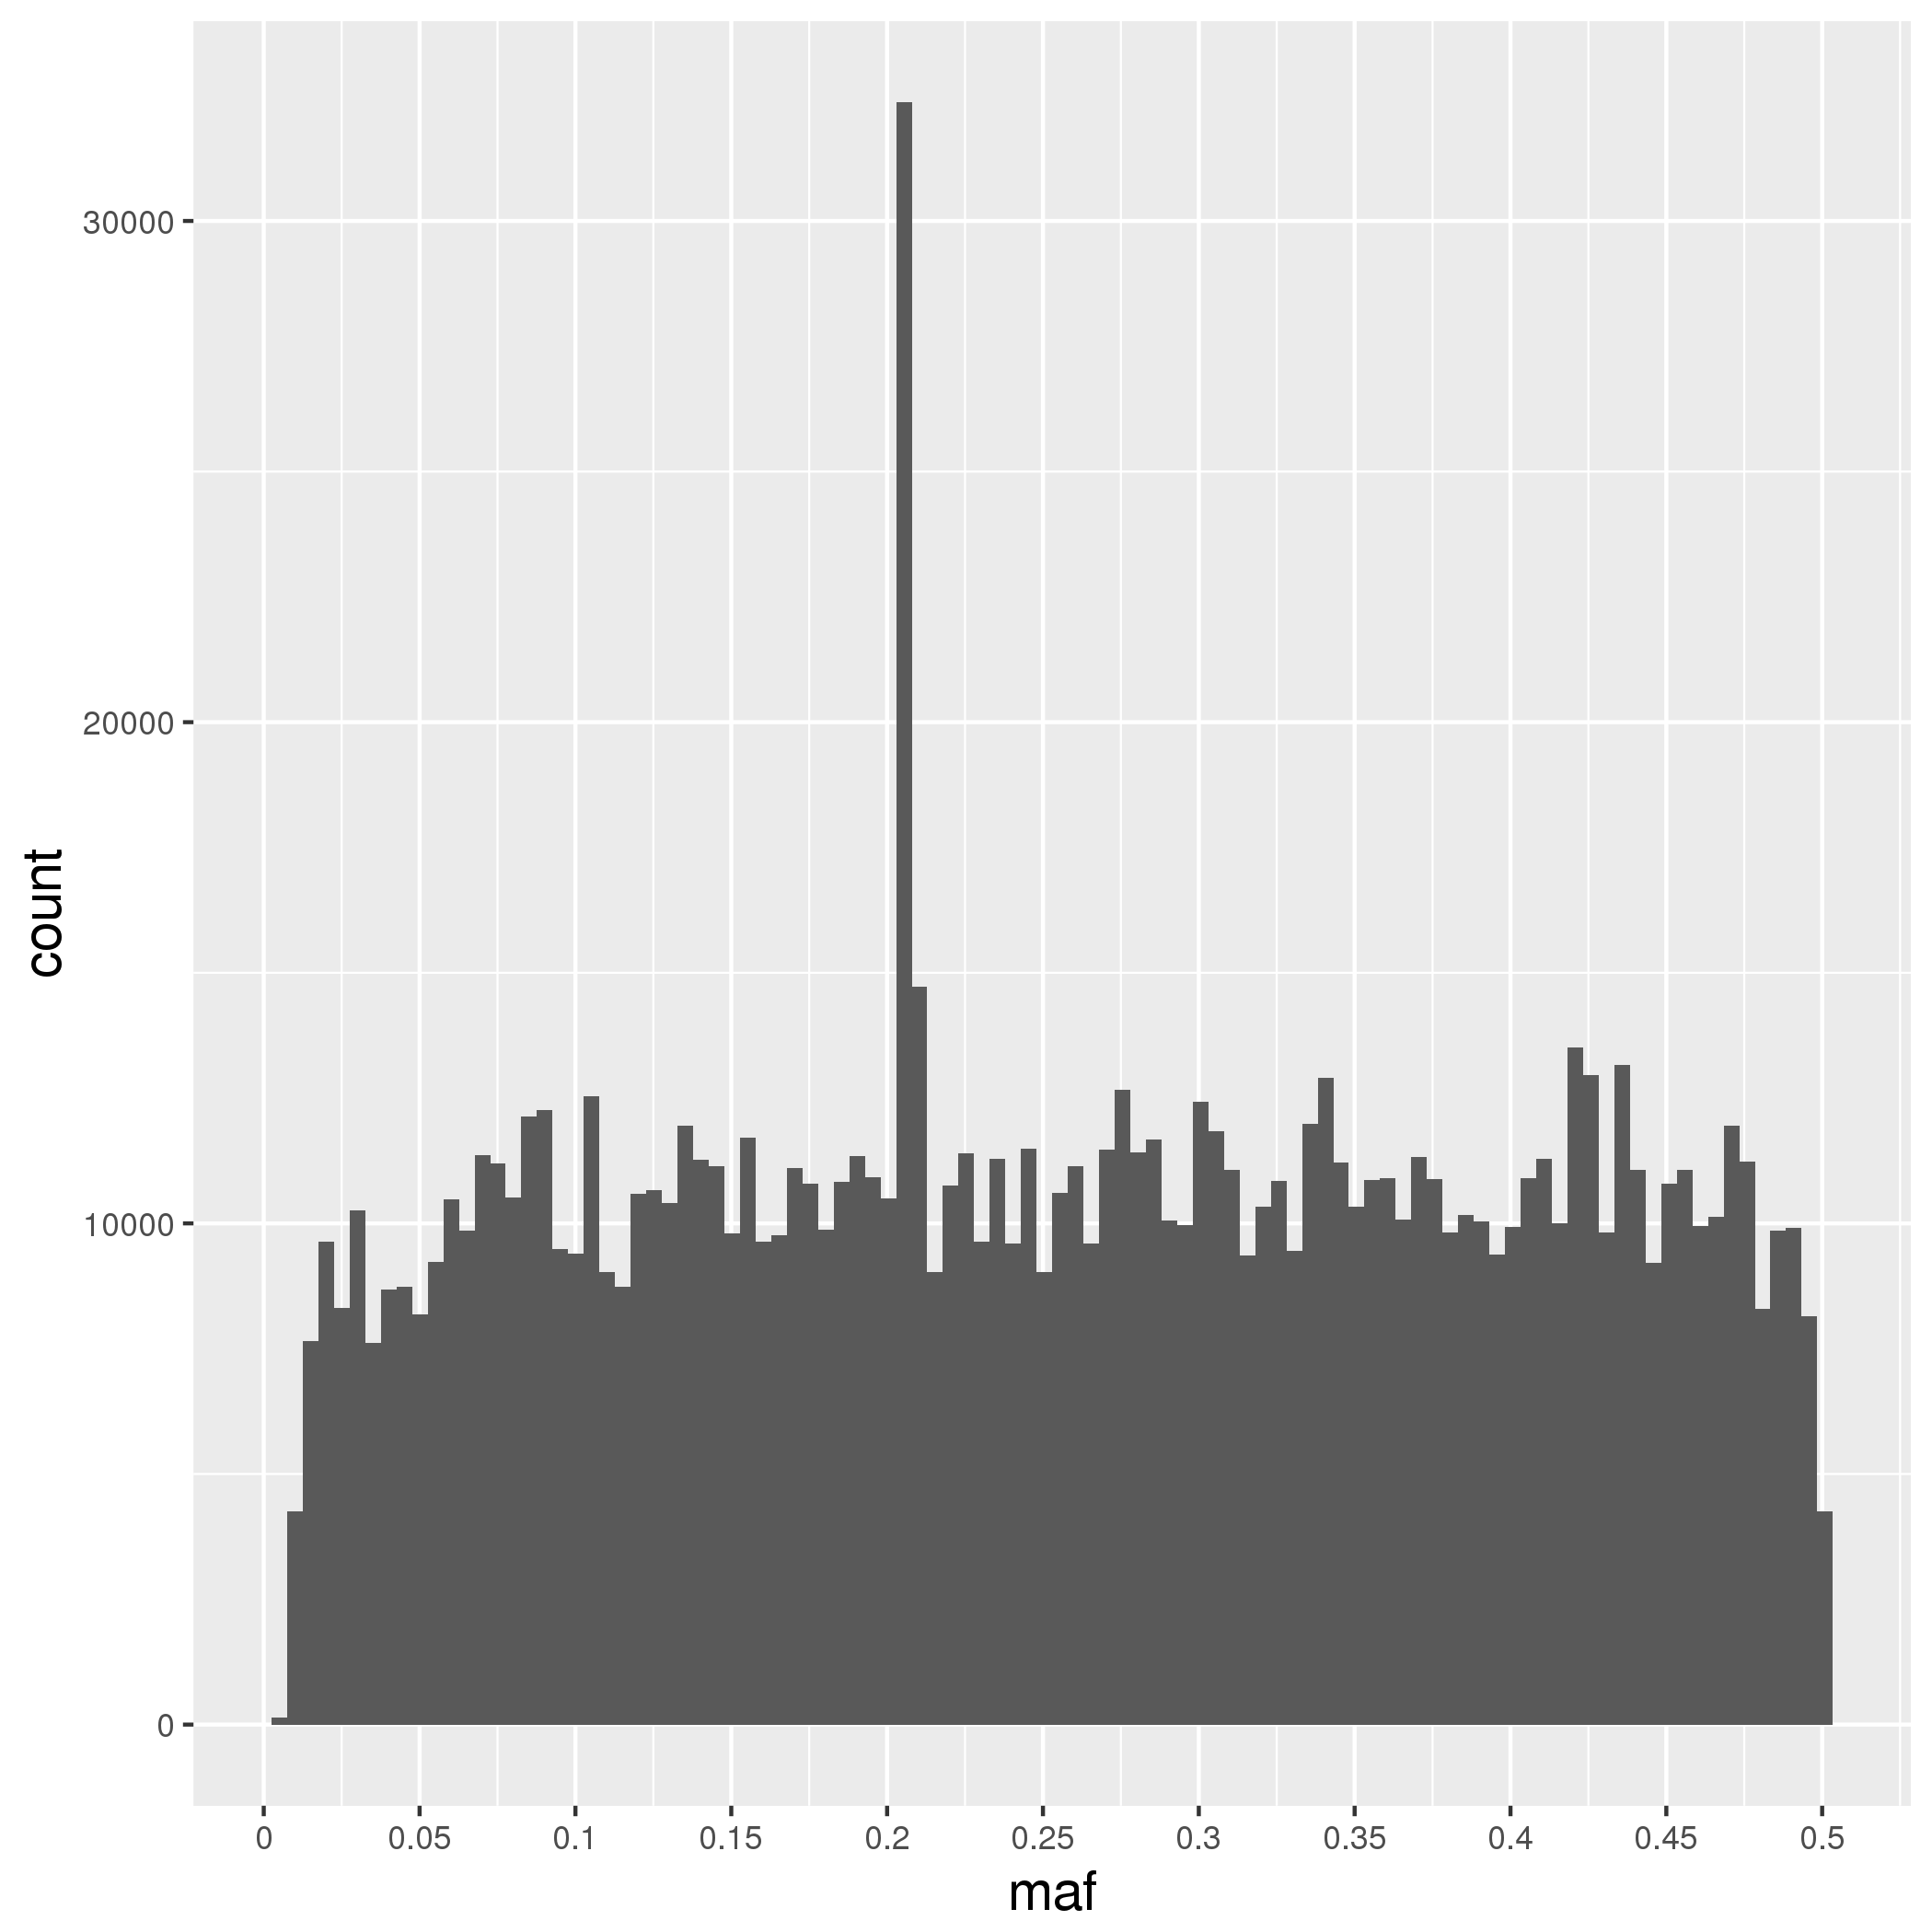 Figure 3: Minor allele frequency of eQTLs in the GTEx v7 whole blood tissue.